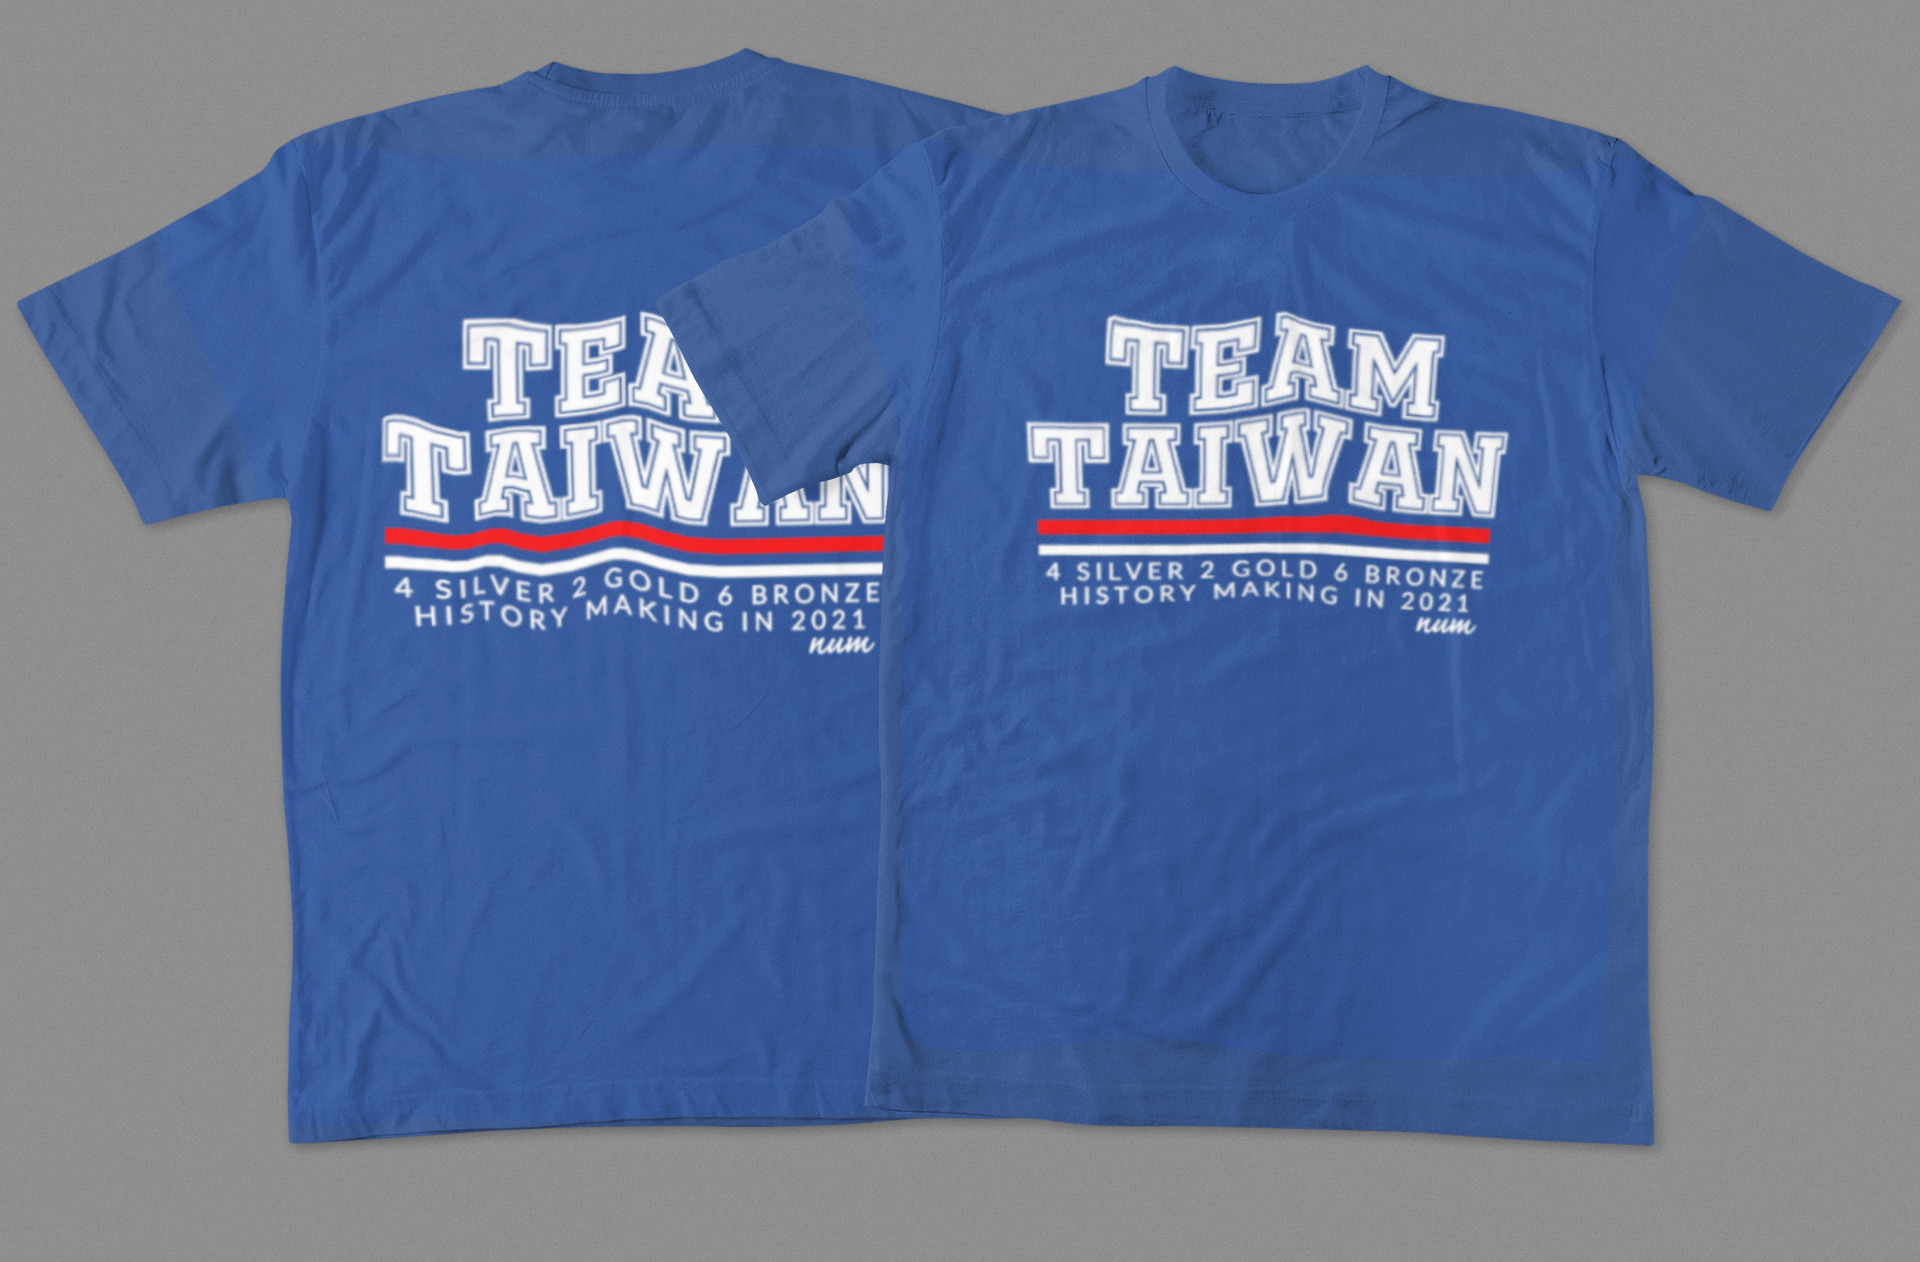 front-and-back-mockup-of-two-t-shirts-laying-flat-on-a-plain-surface-1380-el.png